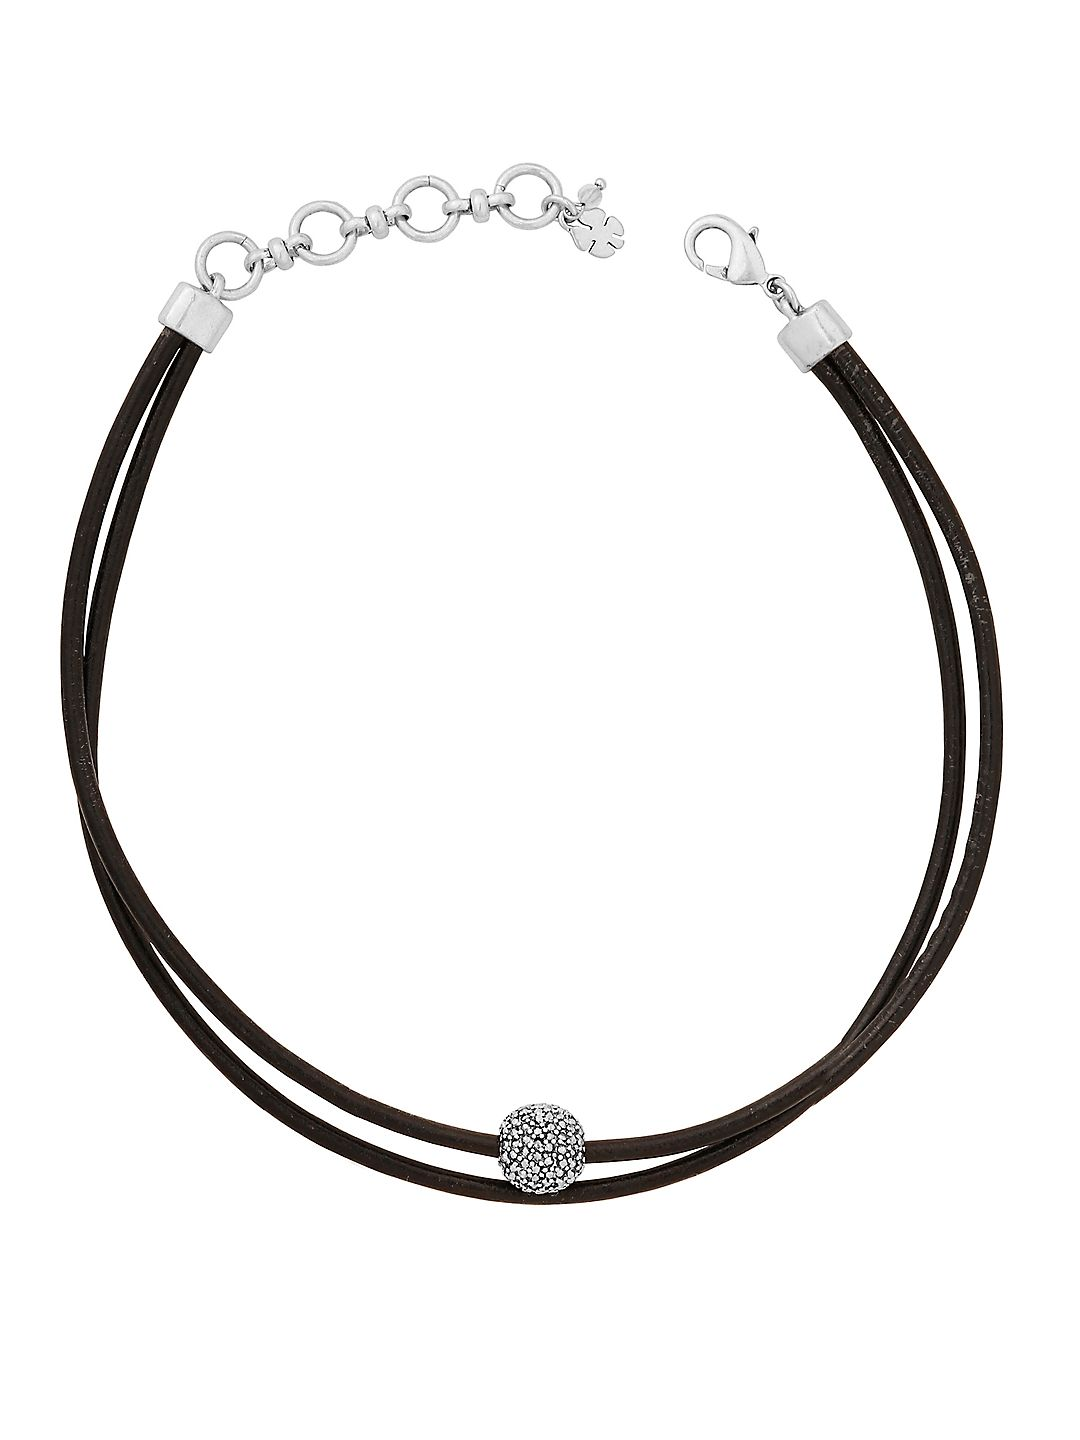 Rock Crystal and Leather Silvertone Choker Necklace